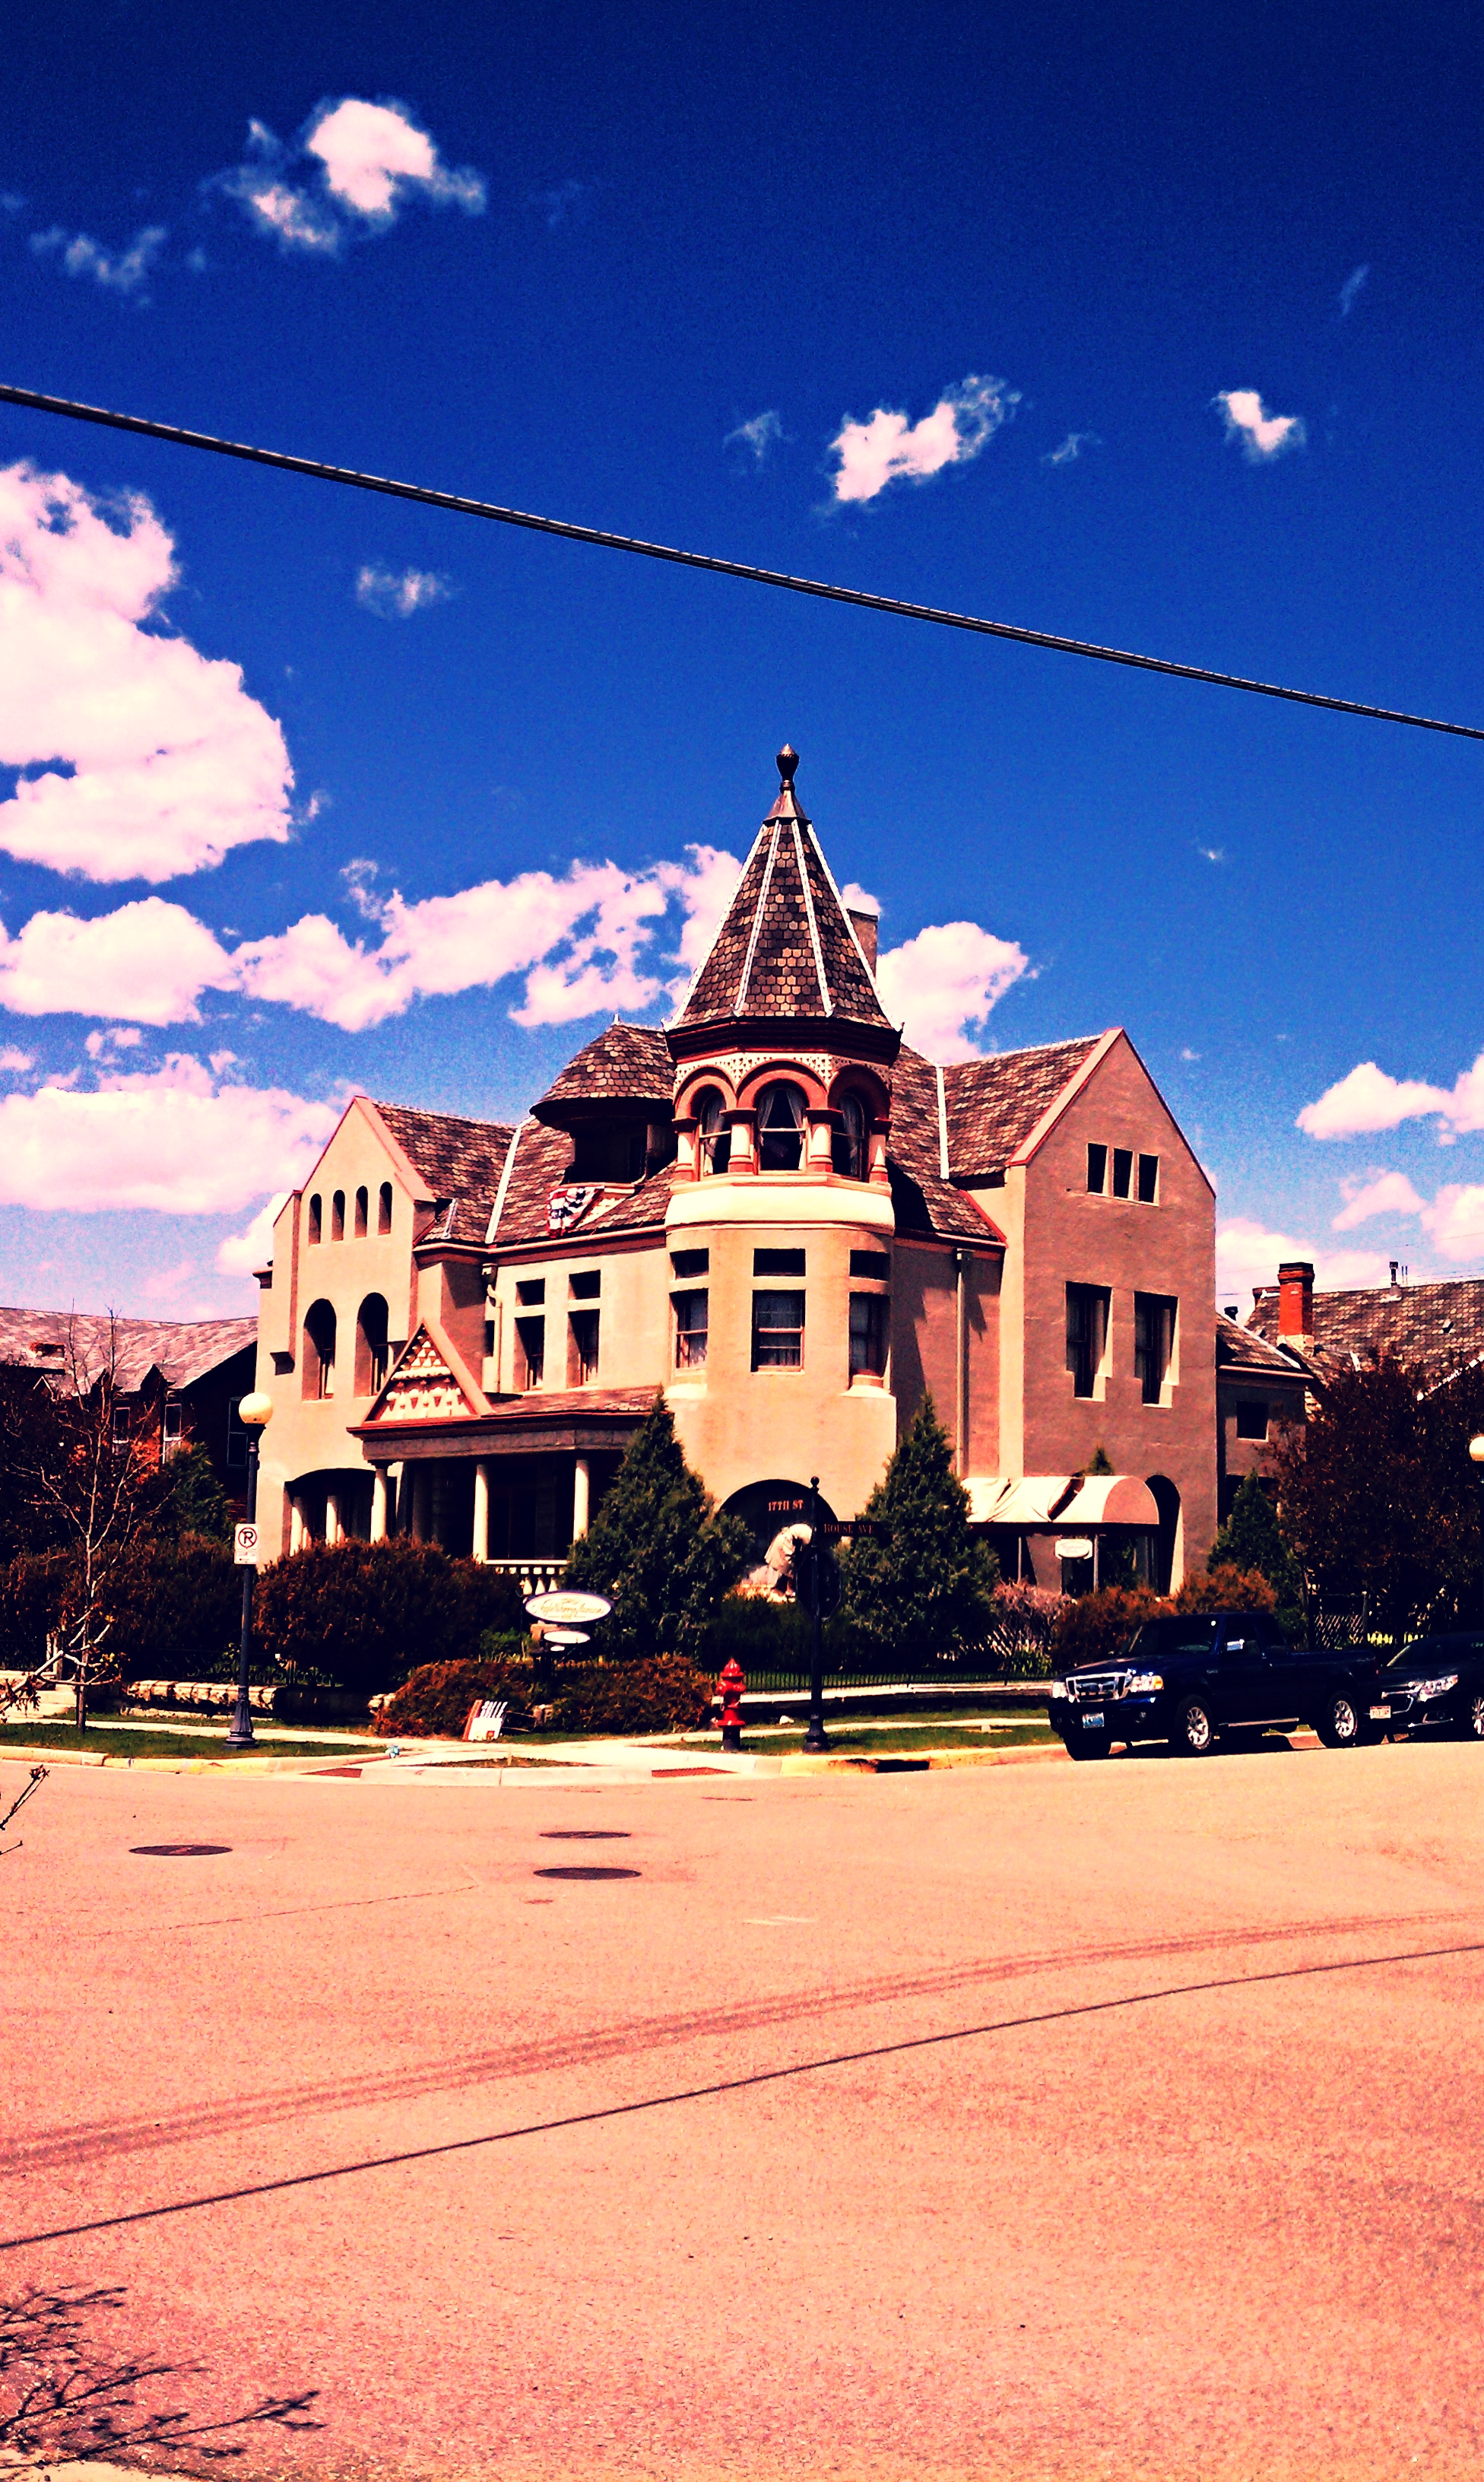 The  Nagle Warren Mansion  is one of a few 19th century Victorian mansions remaining in Cheyenne made possible by the cattle industry.